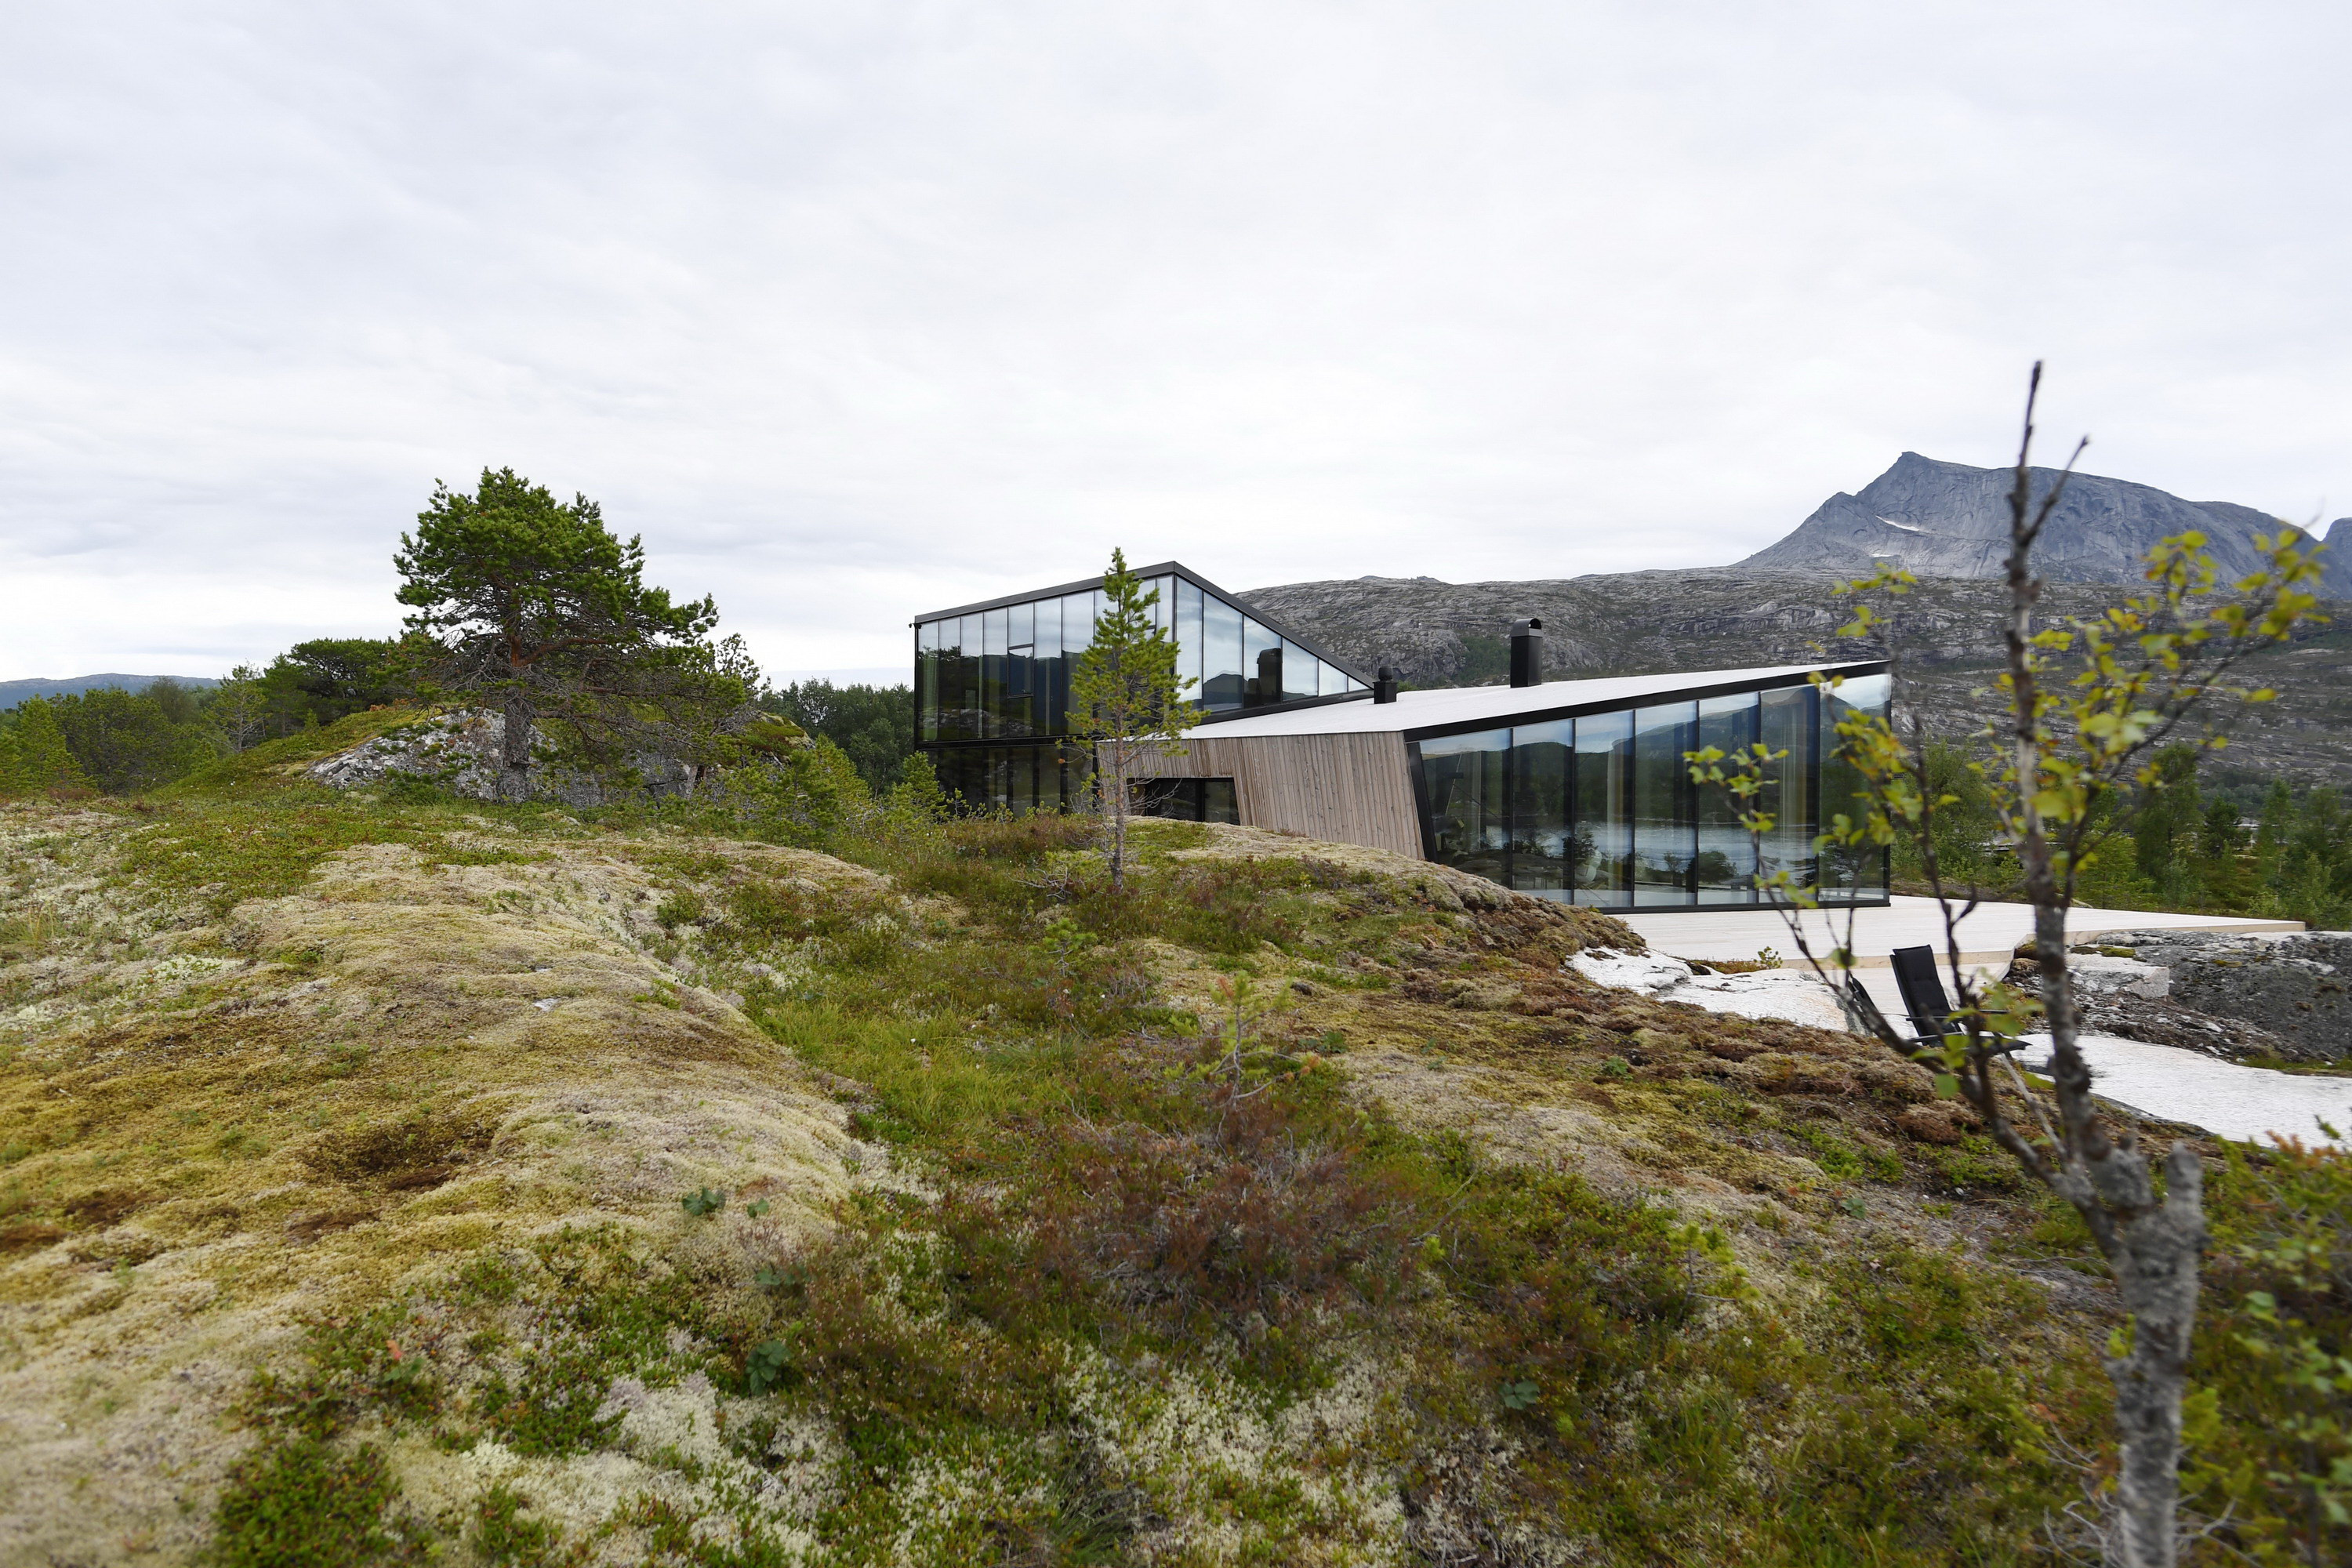 Efjord Retreat Cabin by Stinessen Arkitektur